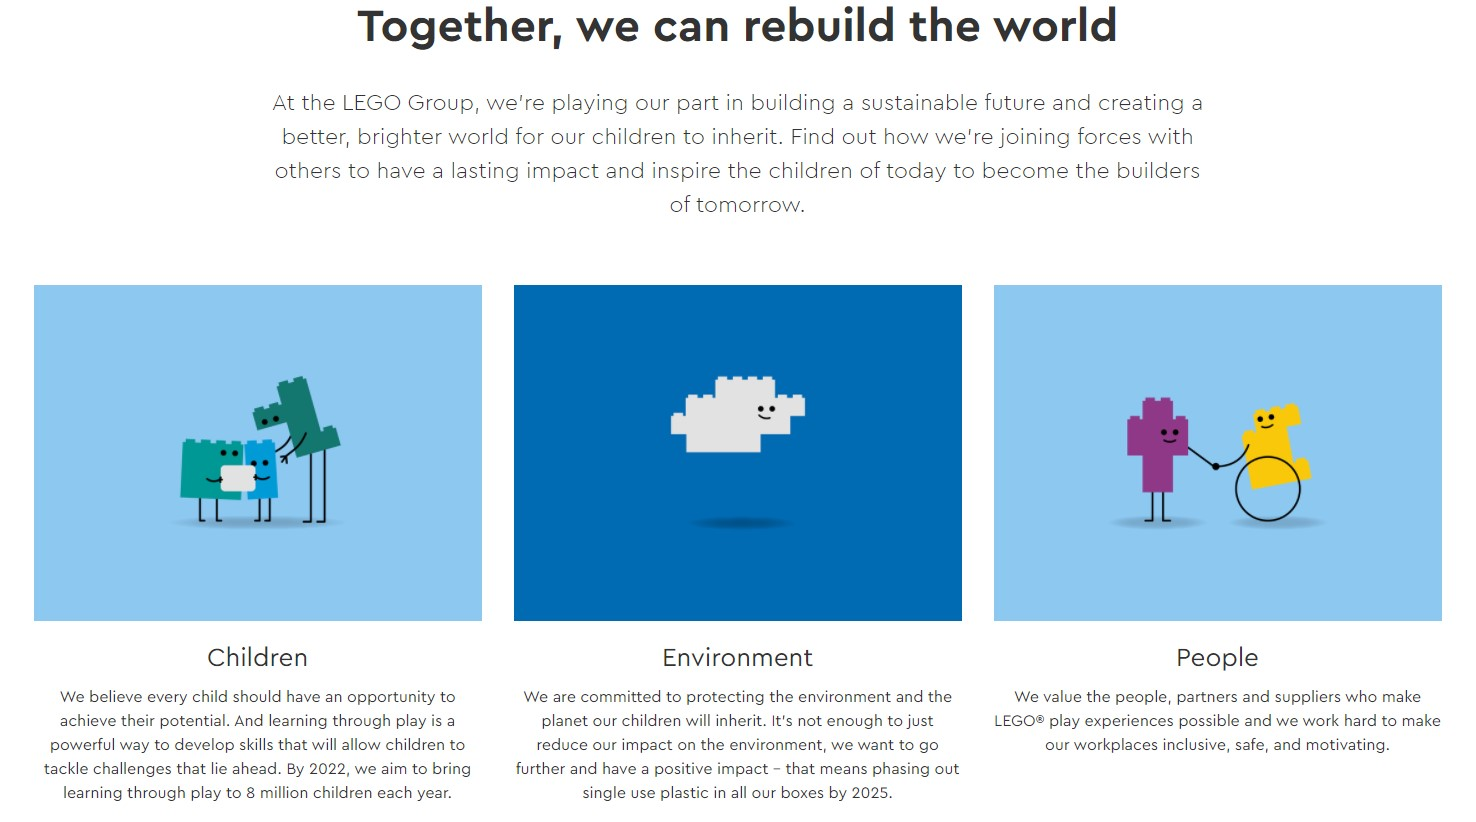 Example of work - writing sustainability content for The LEGO Group